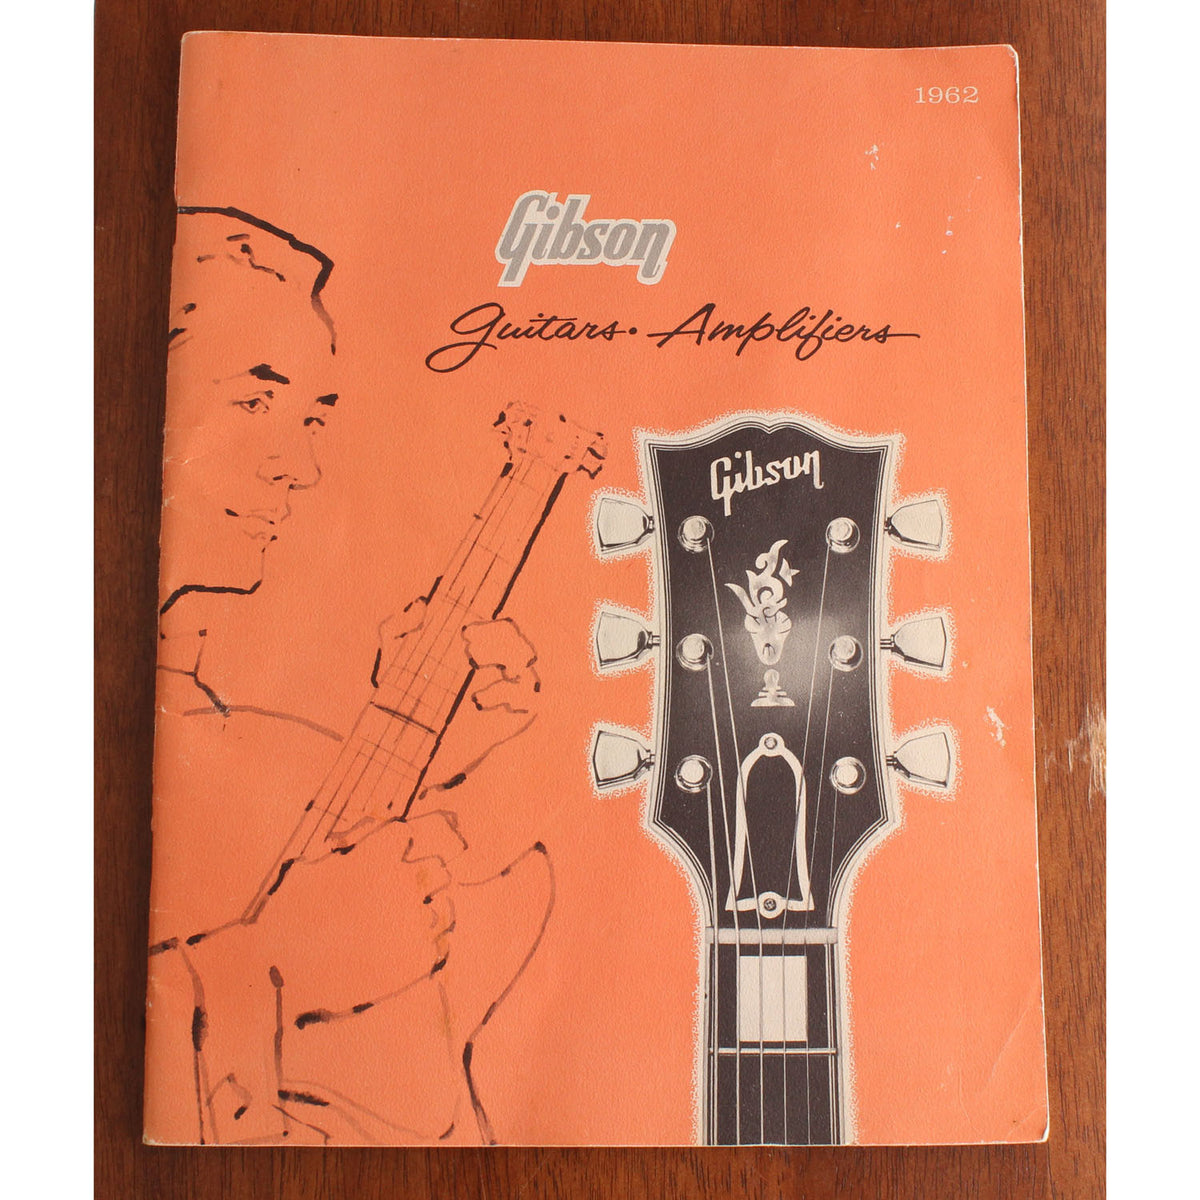 1962 Gibson Guitars and Amplifiers Catalogue - Garrett Park Guitars